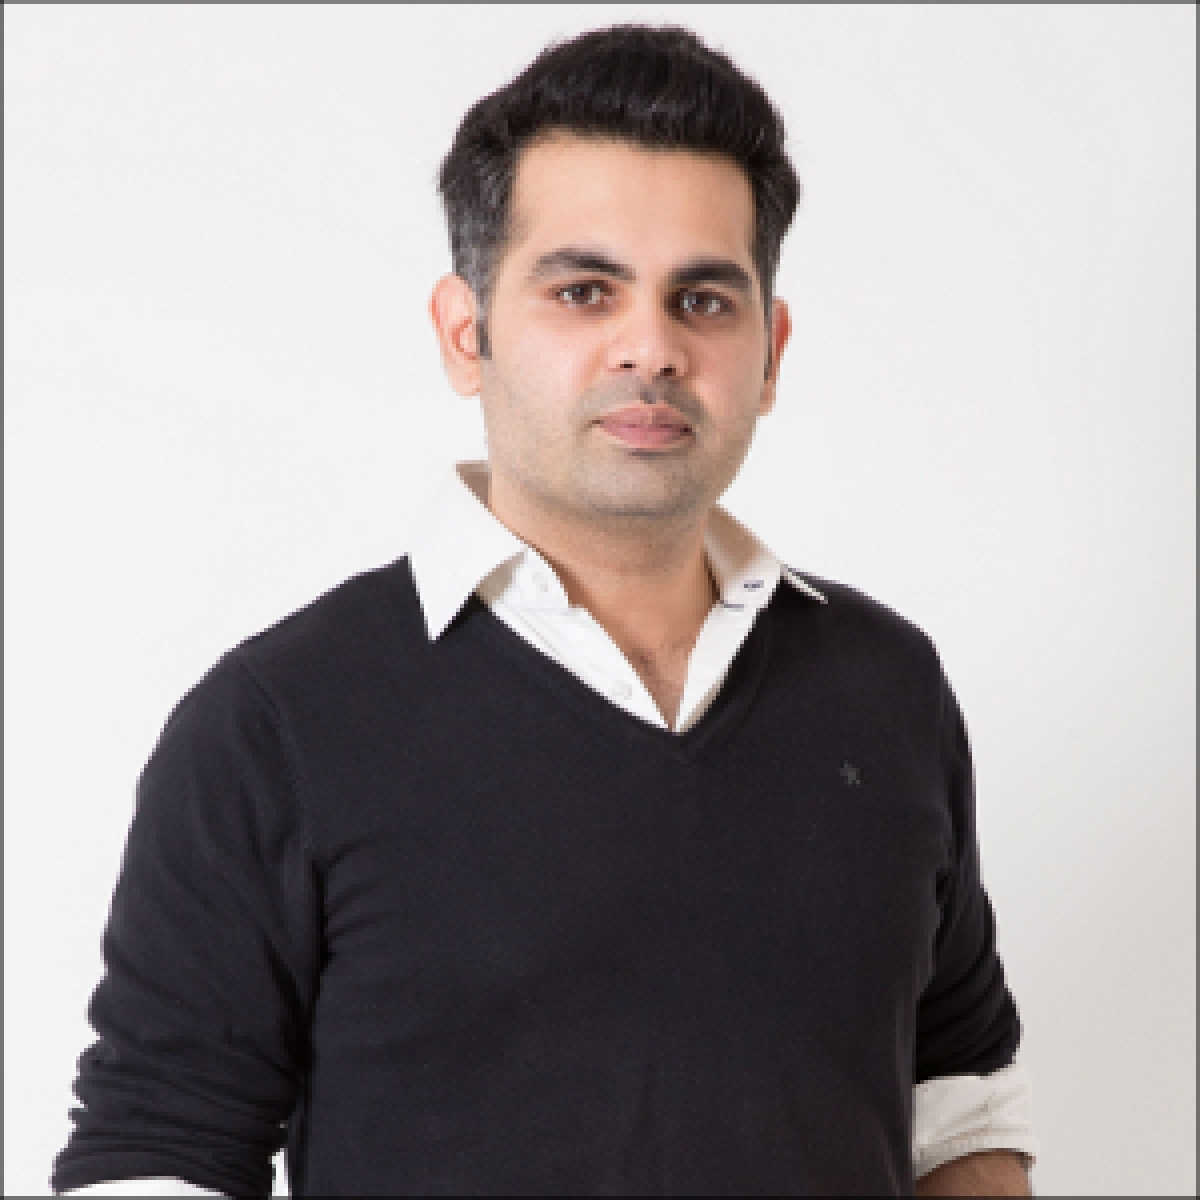 Xiaomi's Karan Shroff believes that failure plays an important role in our leaps of success